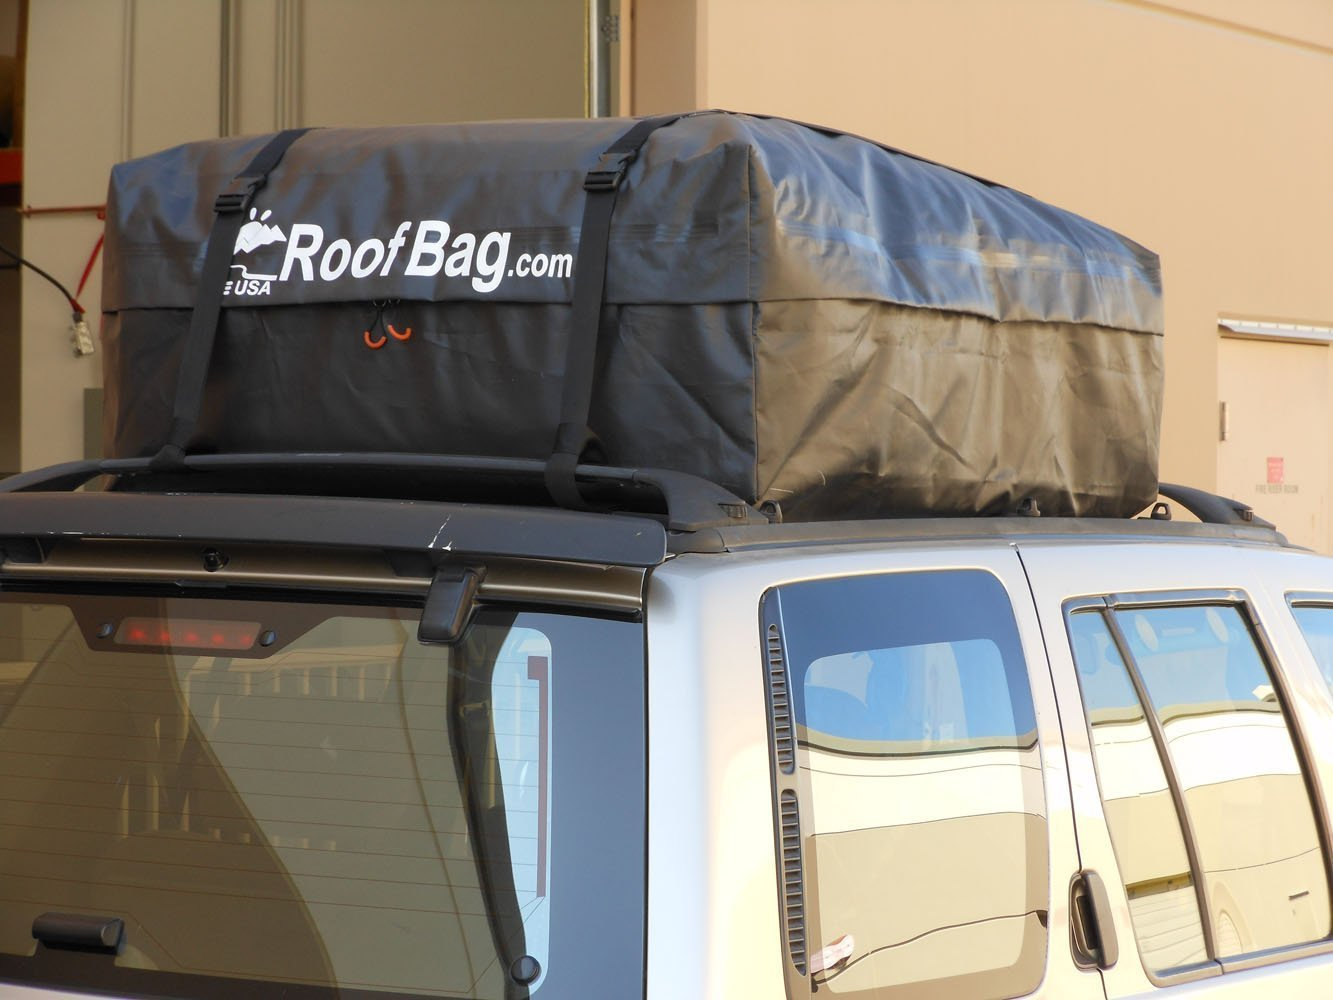 RoofBag 100% Waterproof, Made in USA, Premium Triple Seal for Maximum Protection, 2 Yr Warranty, Fits ALL Cars: With Side Rails, Cross Bars or No Rack, Rooftop Cargo Carrier includes Heavy Duty Straps